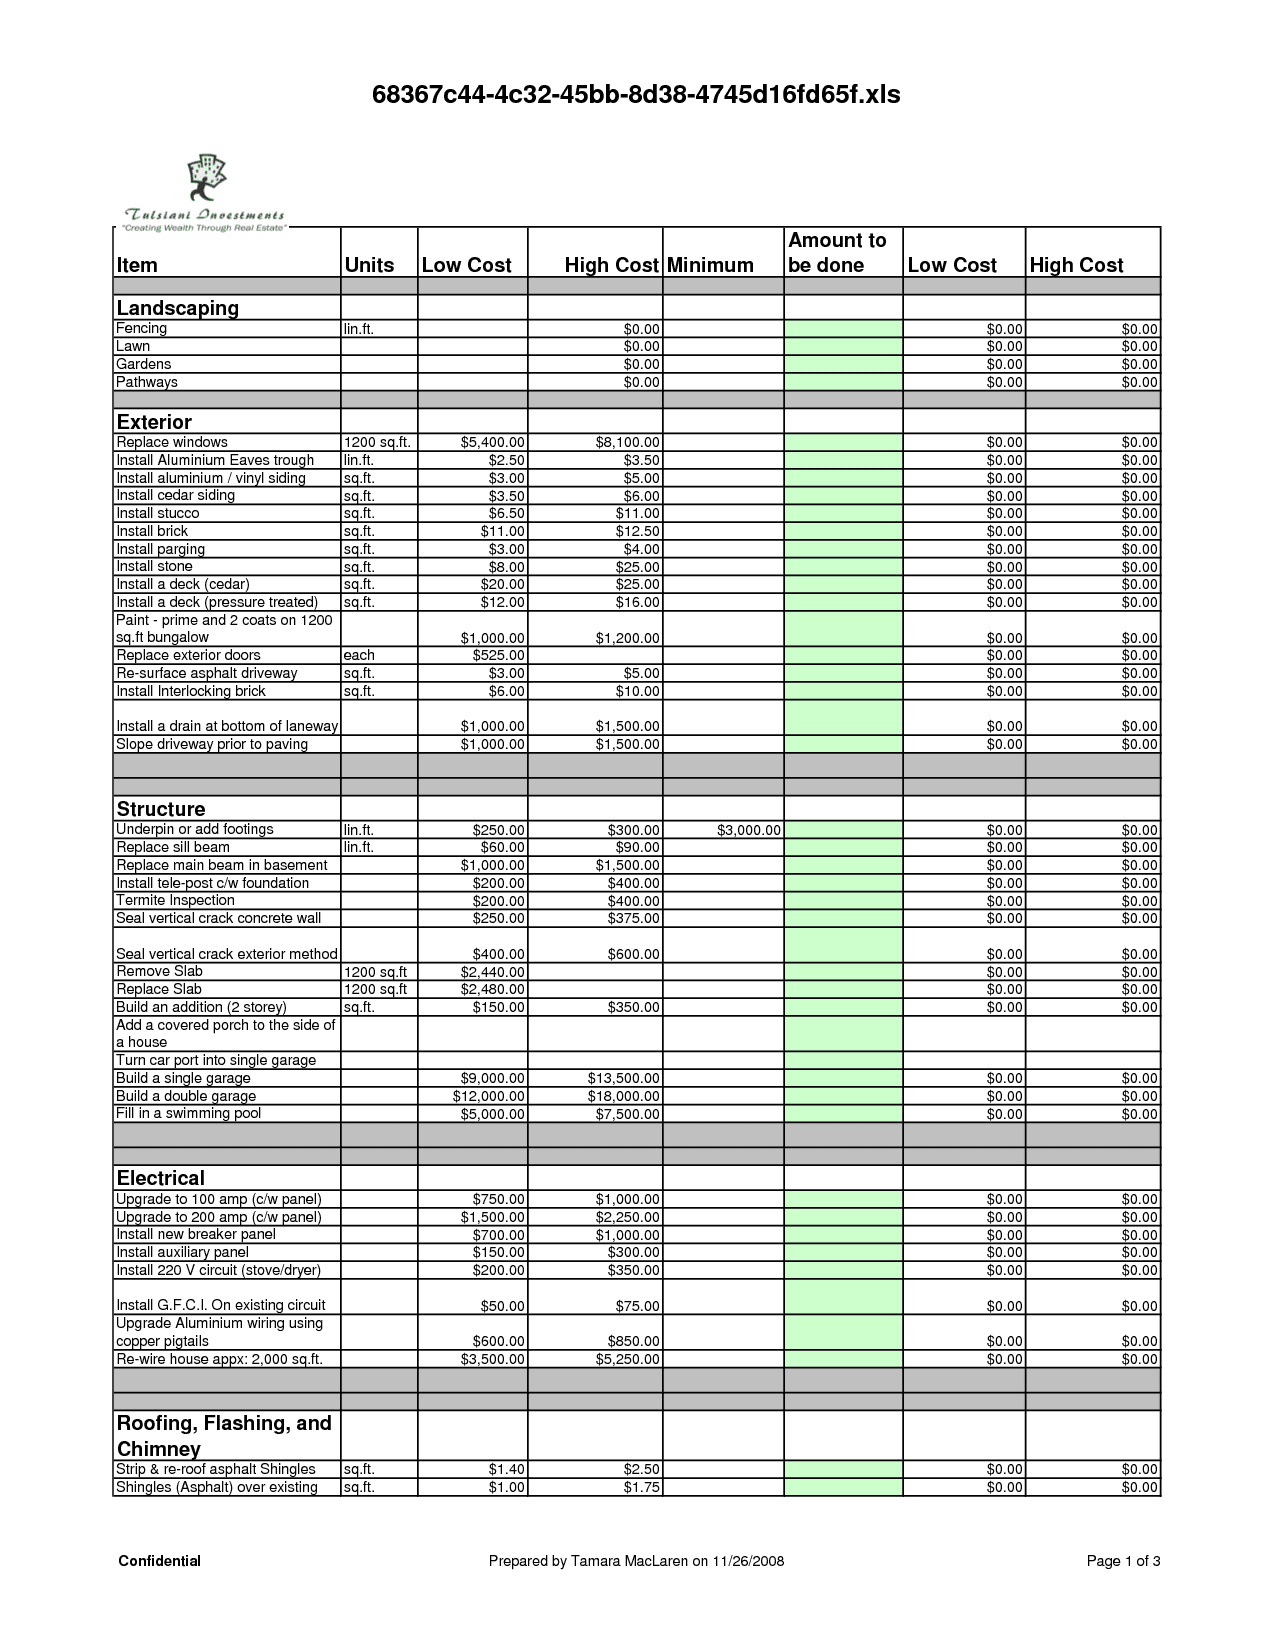 Estimating Spreadsheets In Excel Free Estimating Spreadsheet Template Spreadsheet Templates for Busines Spreadsheet Templates for Busines Construction Cost Estimate Template Excel